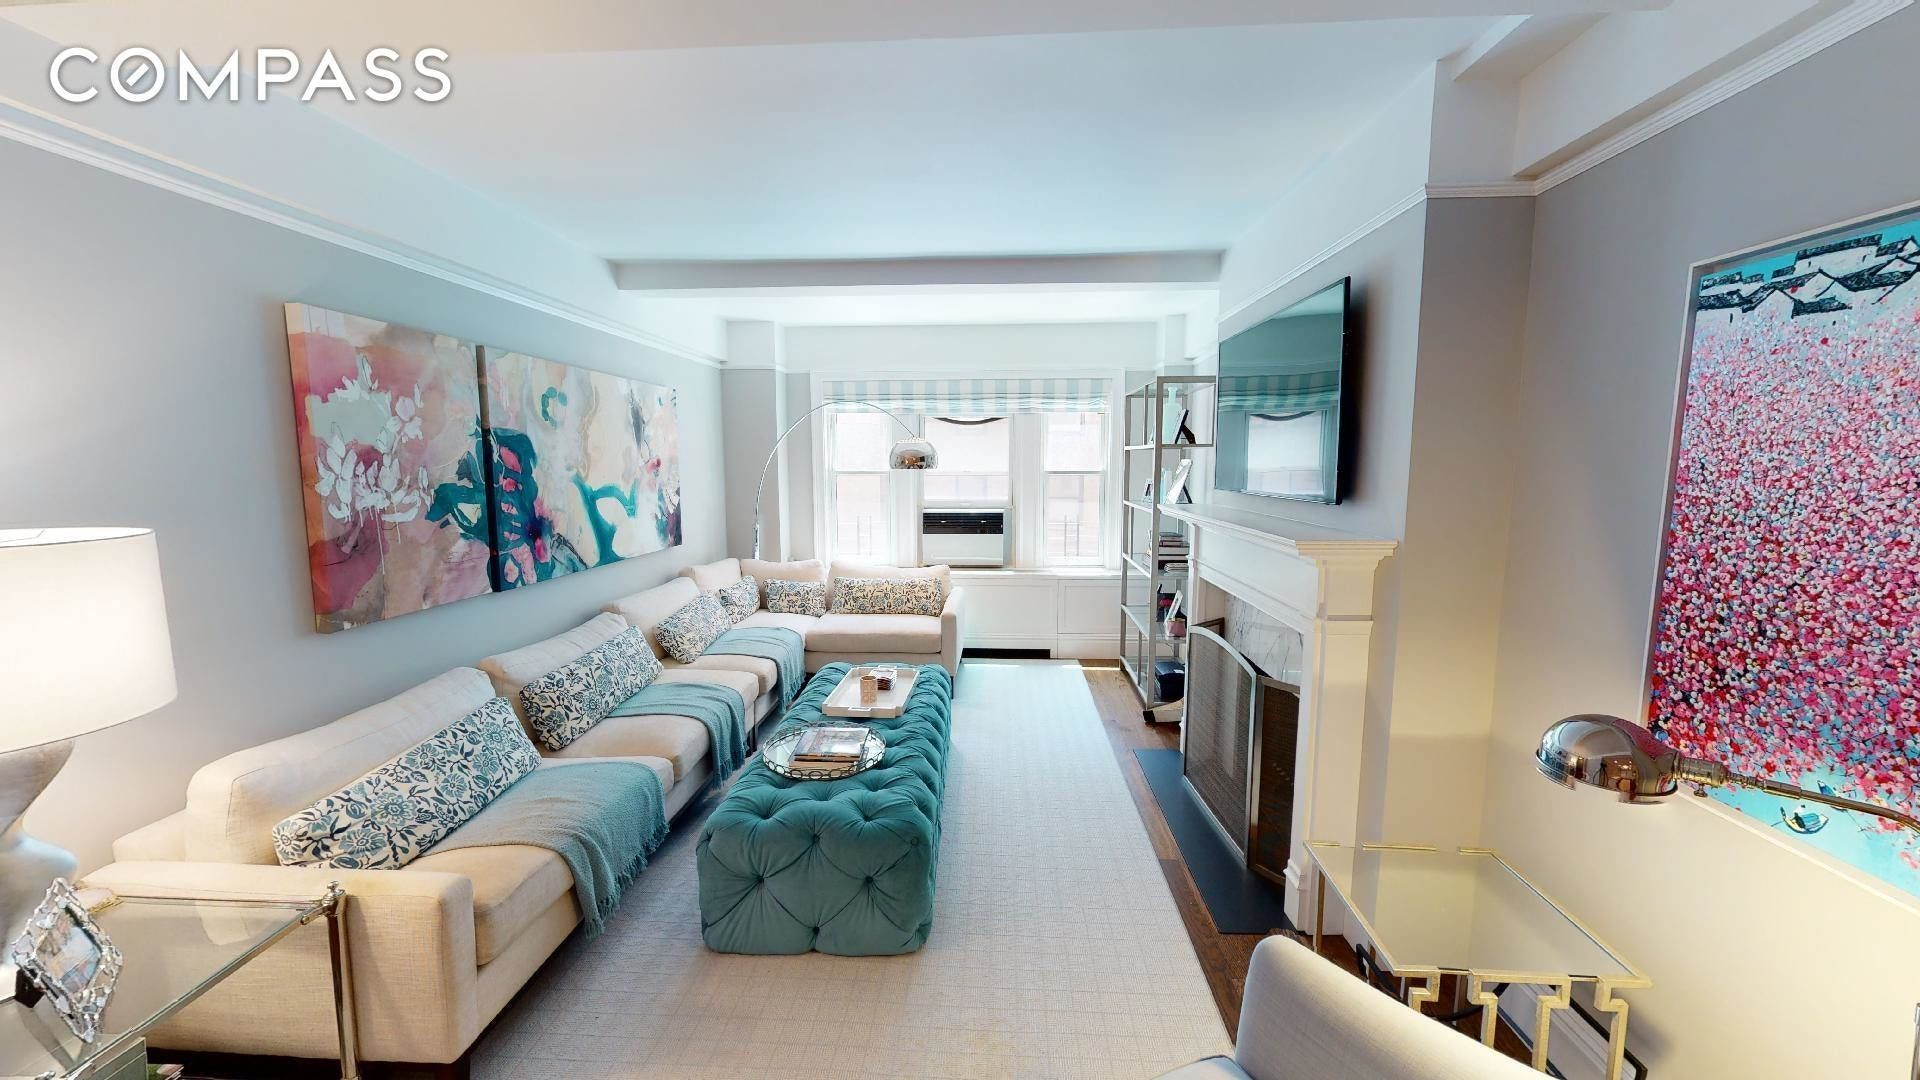 Apartment for sale at 7 East 85th Street, Apt 5-AB